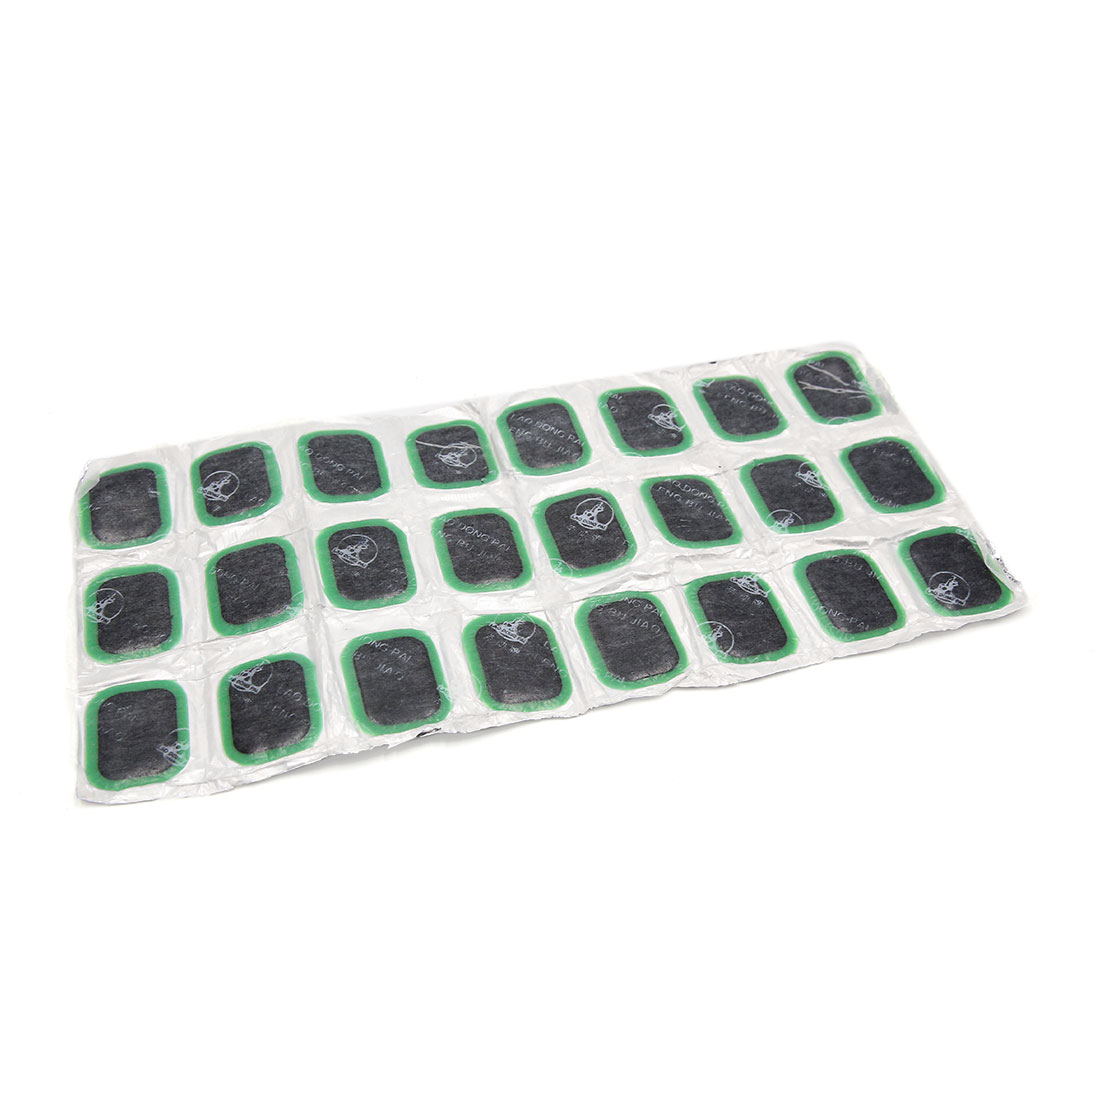 24 Pcs Universal Tyre Puncture Patches Patch Tire Repair Tool 24 x 35mm for Car Motorcycle